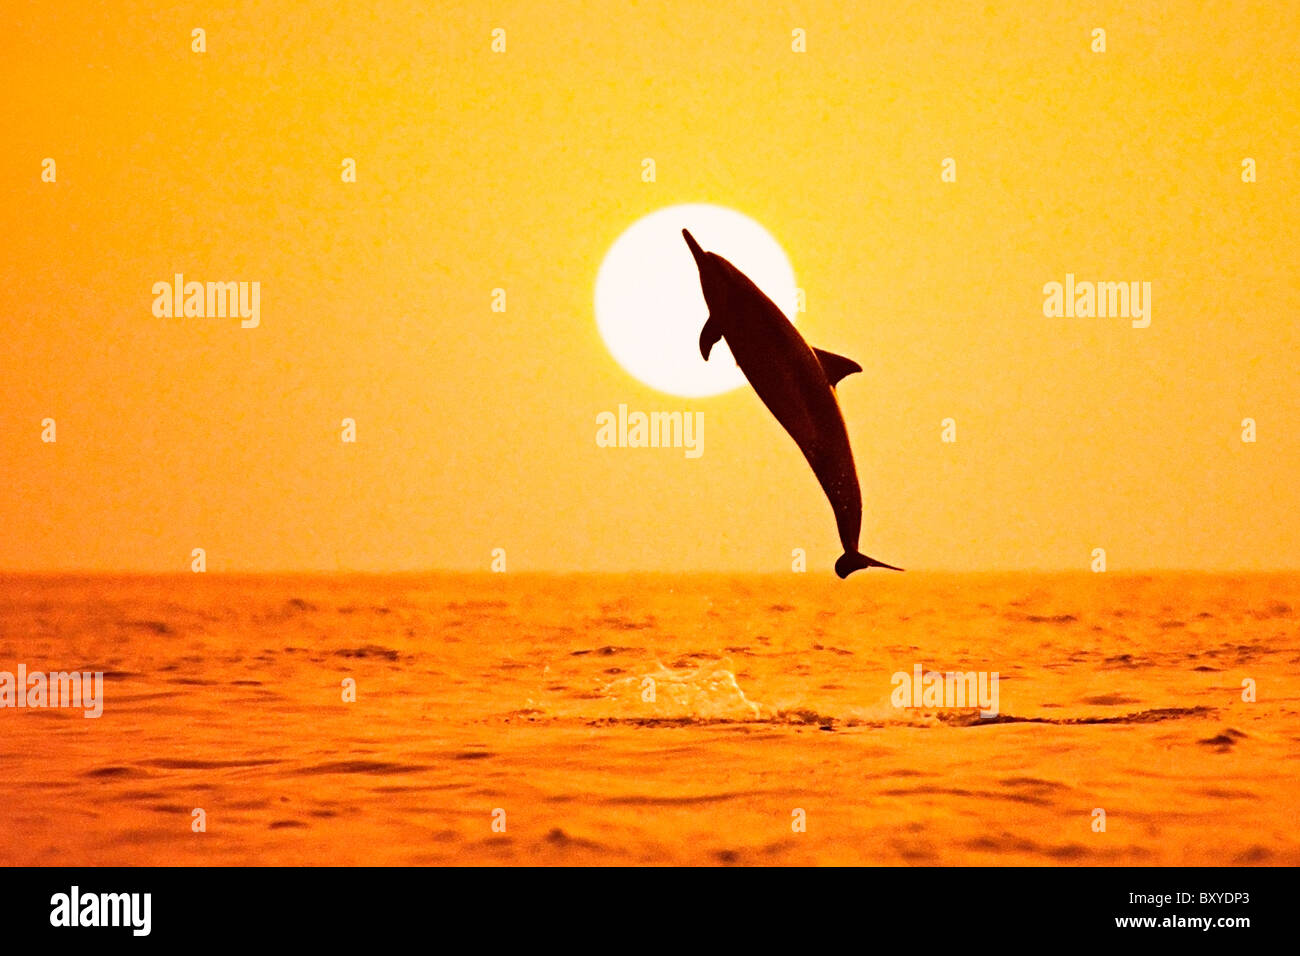 Silhouette of Spinner Dolphin, Stenella longirostris longirostris, Big Island, Hawaii, USA - Stock Image